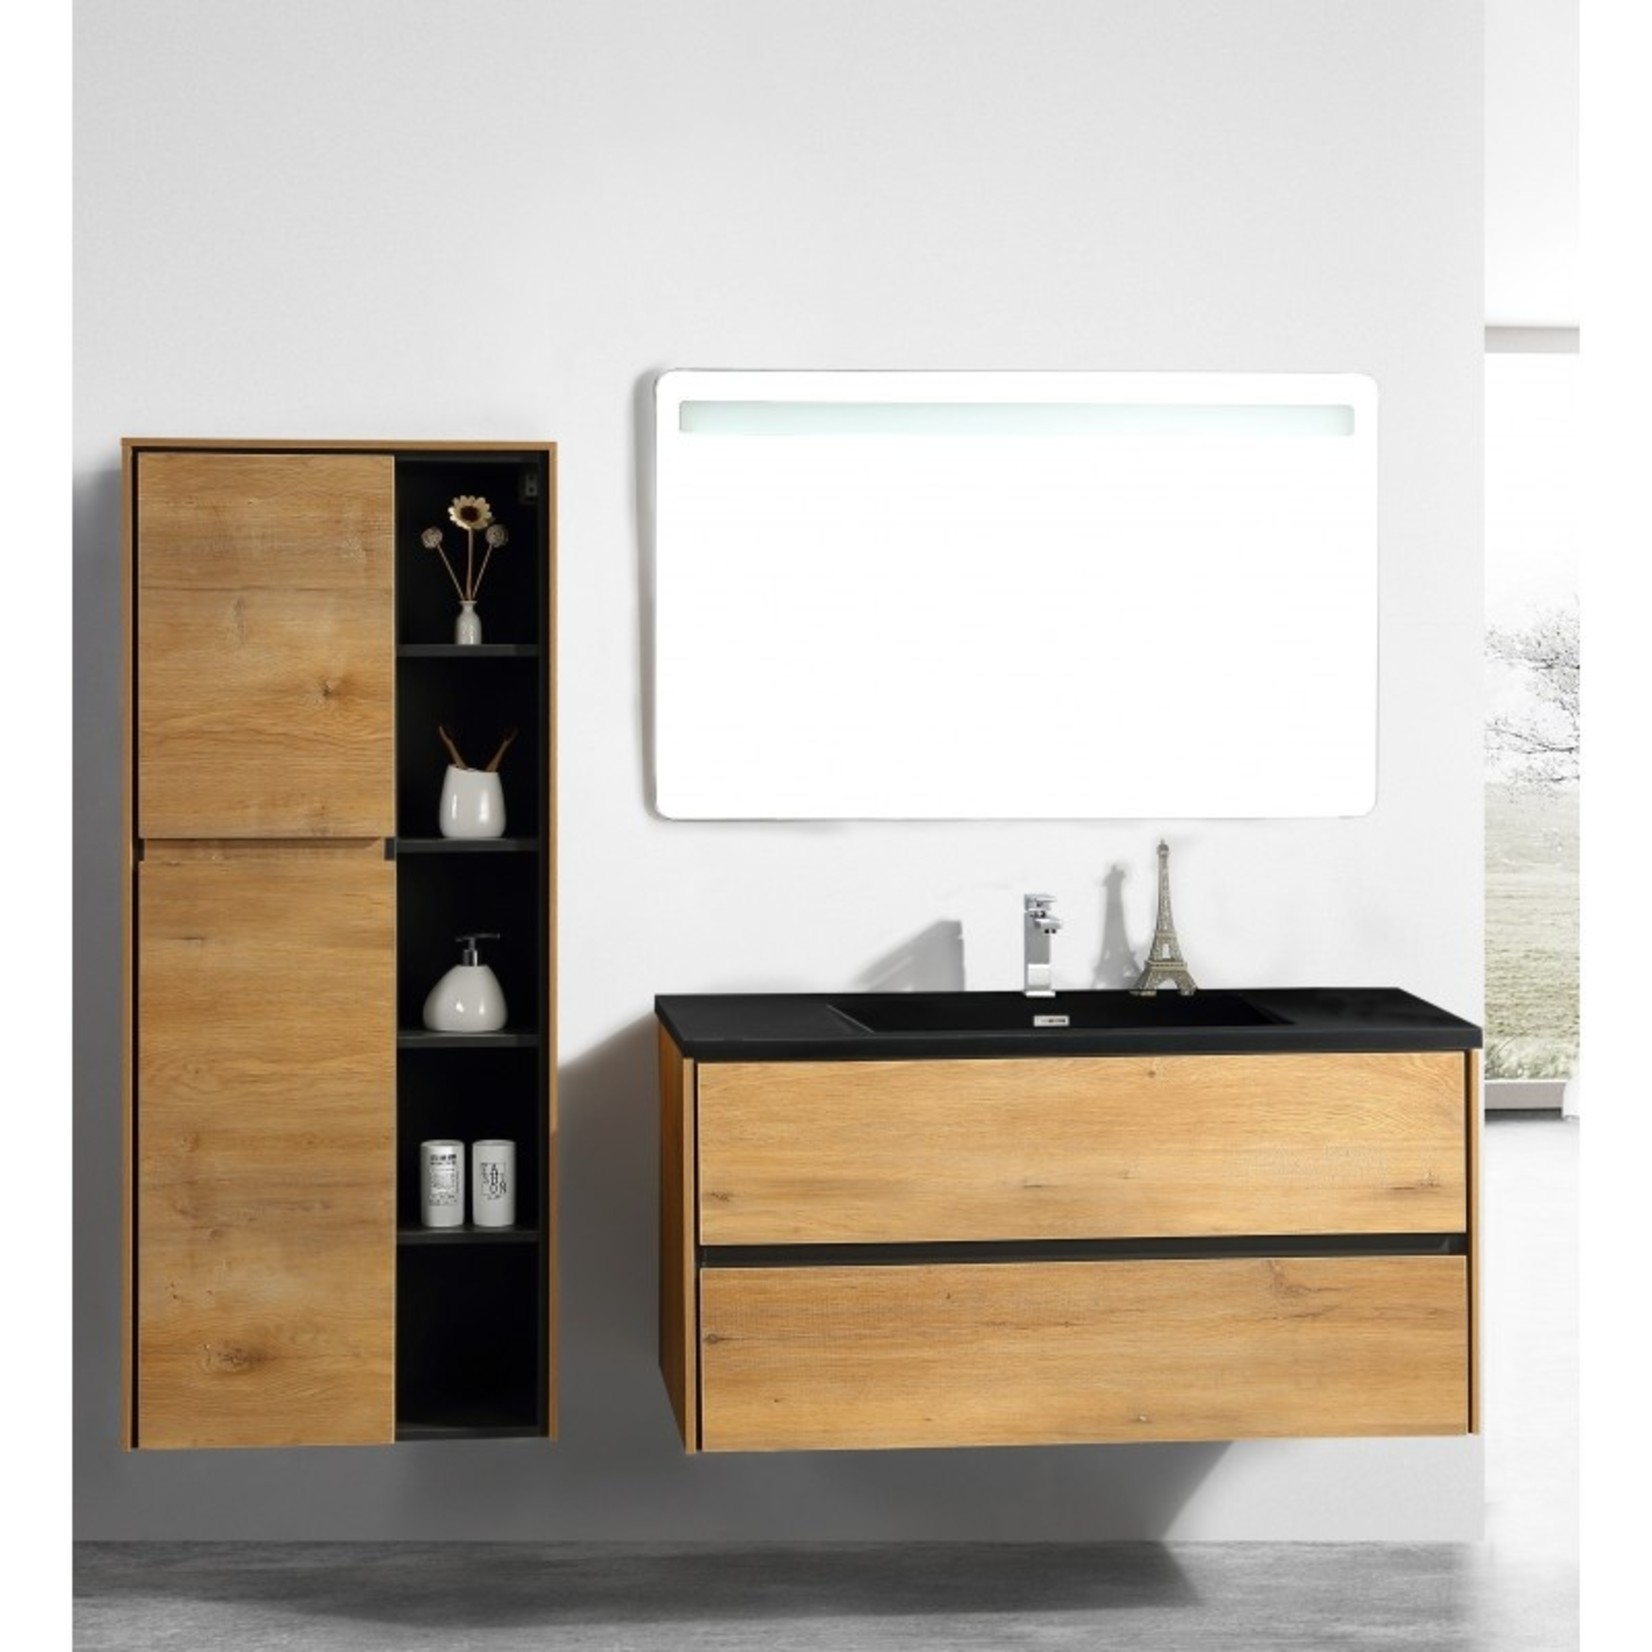 48 '' European oak floating vanity